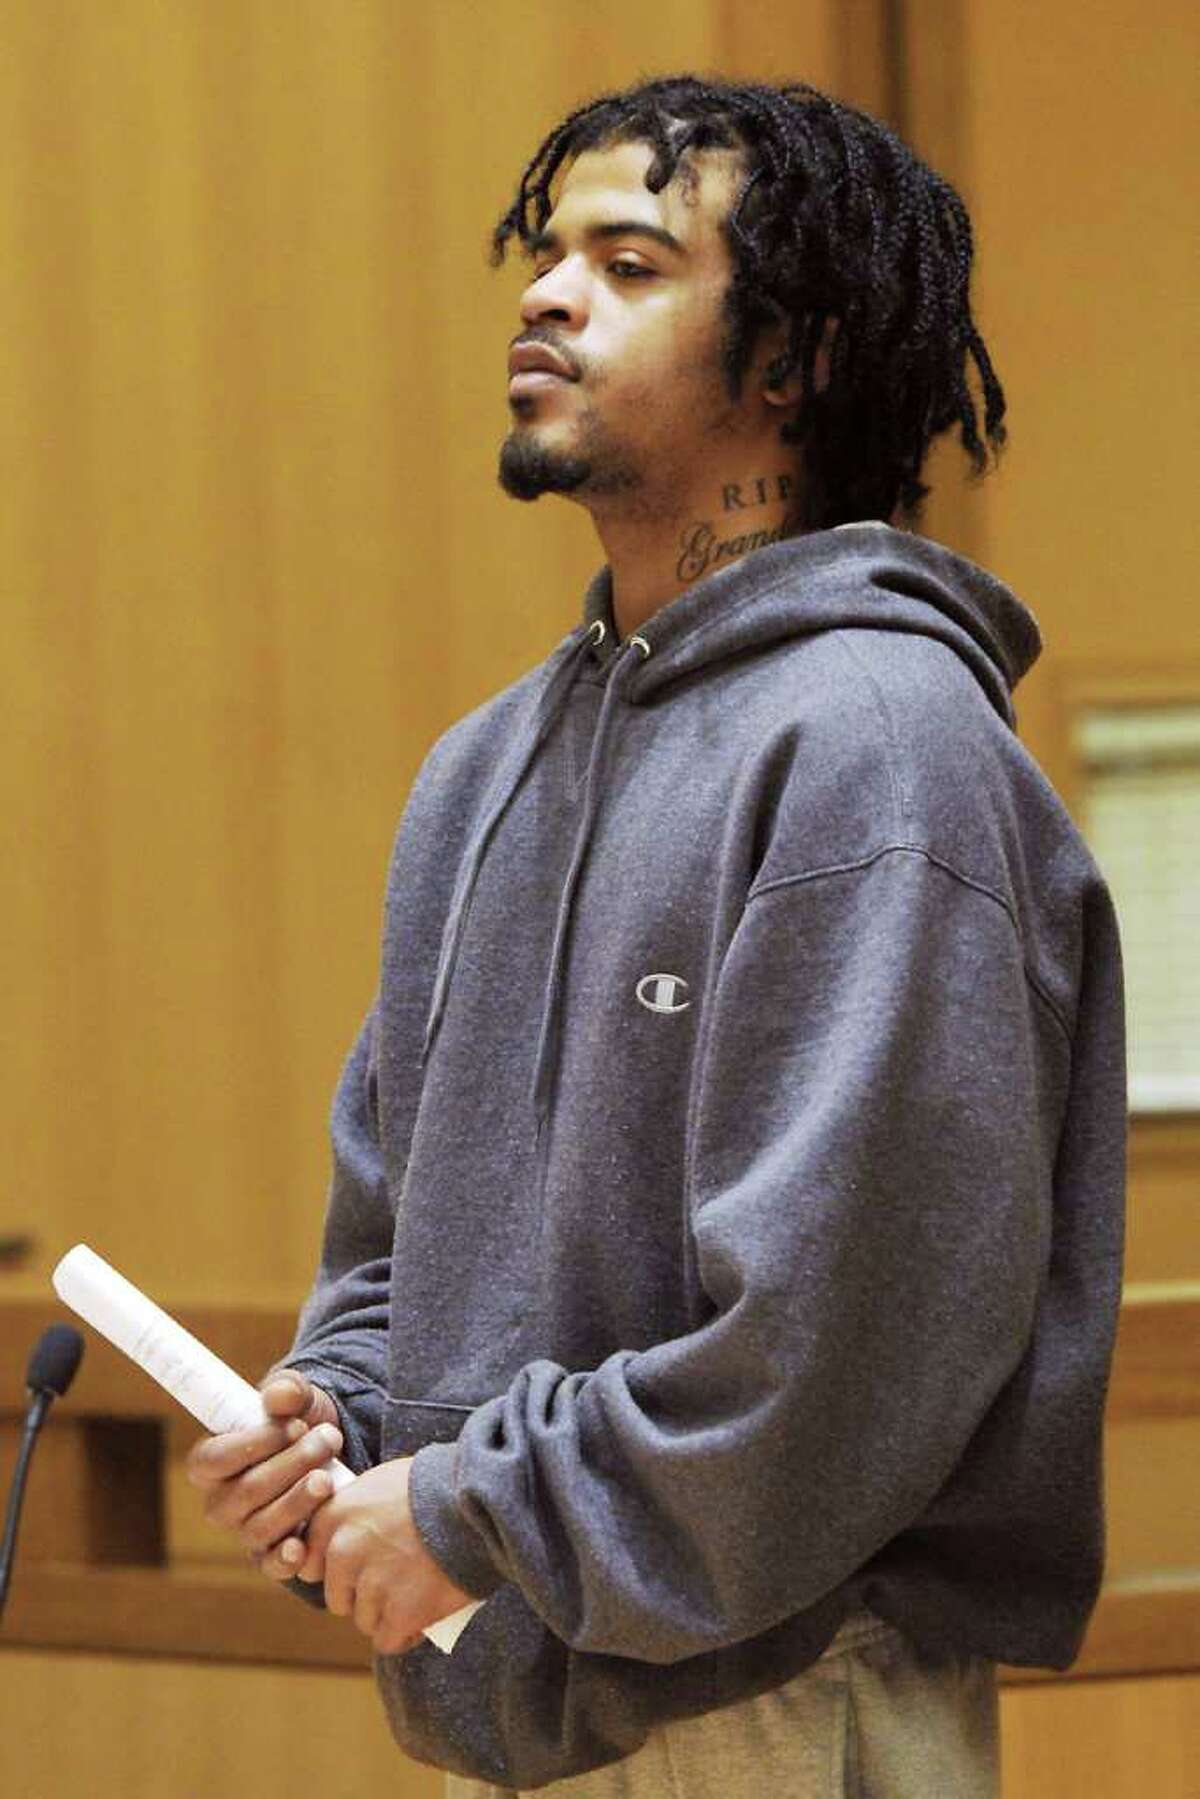 David Davis is arraigned in State Superior Court of Stamford, Conn. on Tuesday March 22, 2011. Davis, 21, allegedly grabbed scissors and slashed another in the back while getting his hair cut in the South End last week, police said.